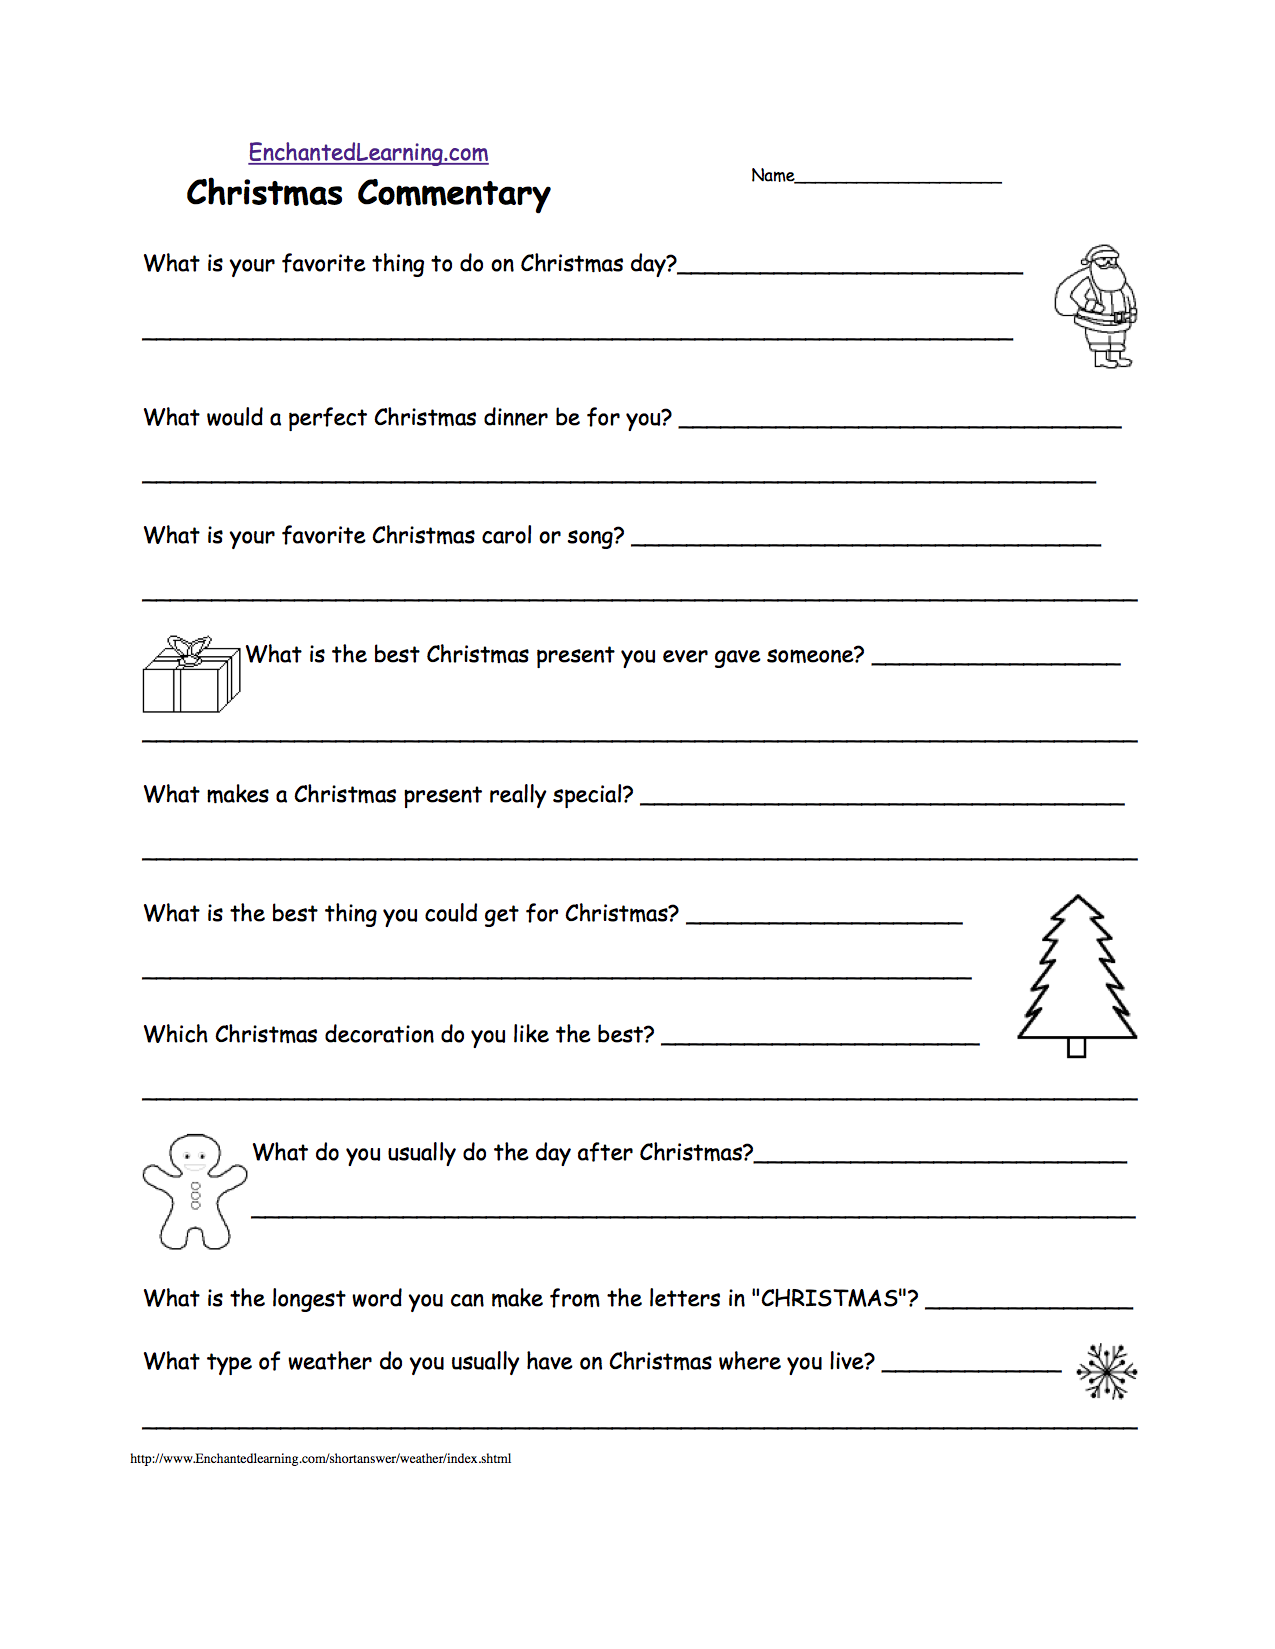 Worksheets Christmas Worksheets christmas activities writing worksheets enchantedlearning com worksheet birthday commentary